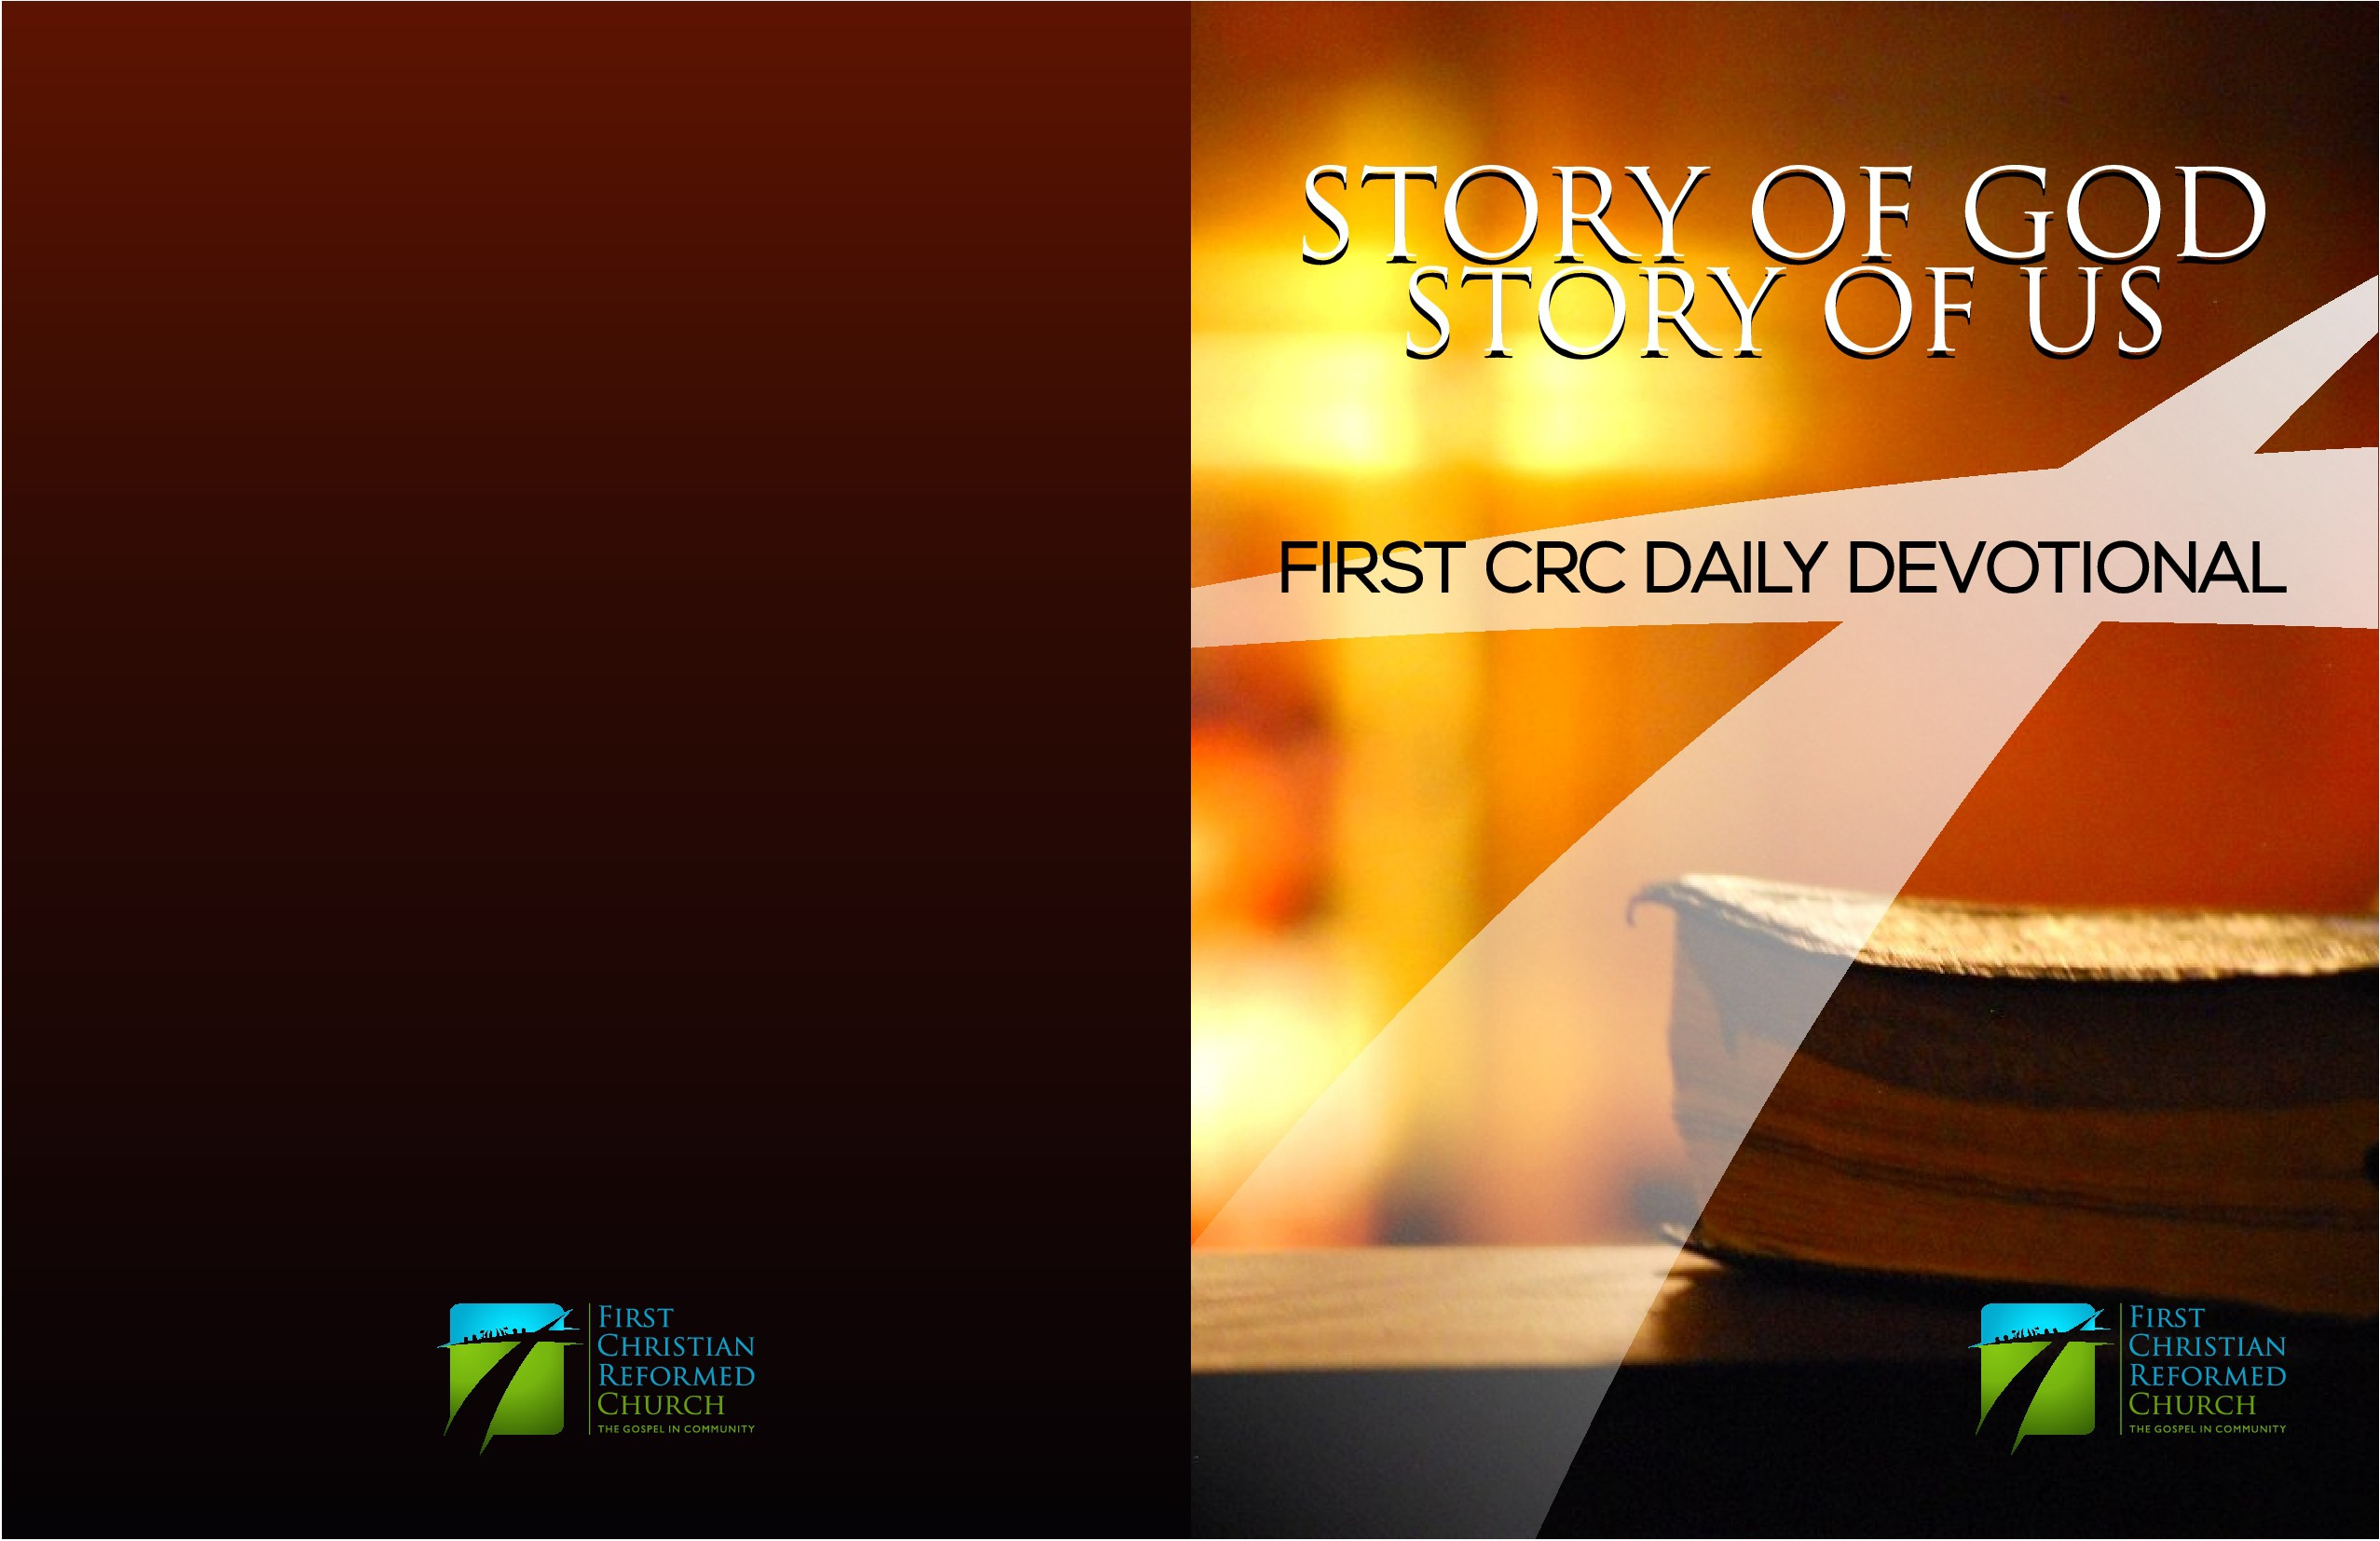 First CRC Daily Devotional